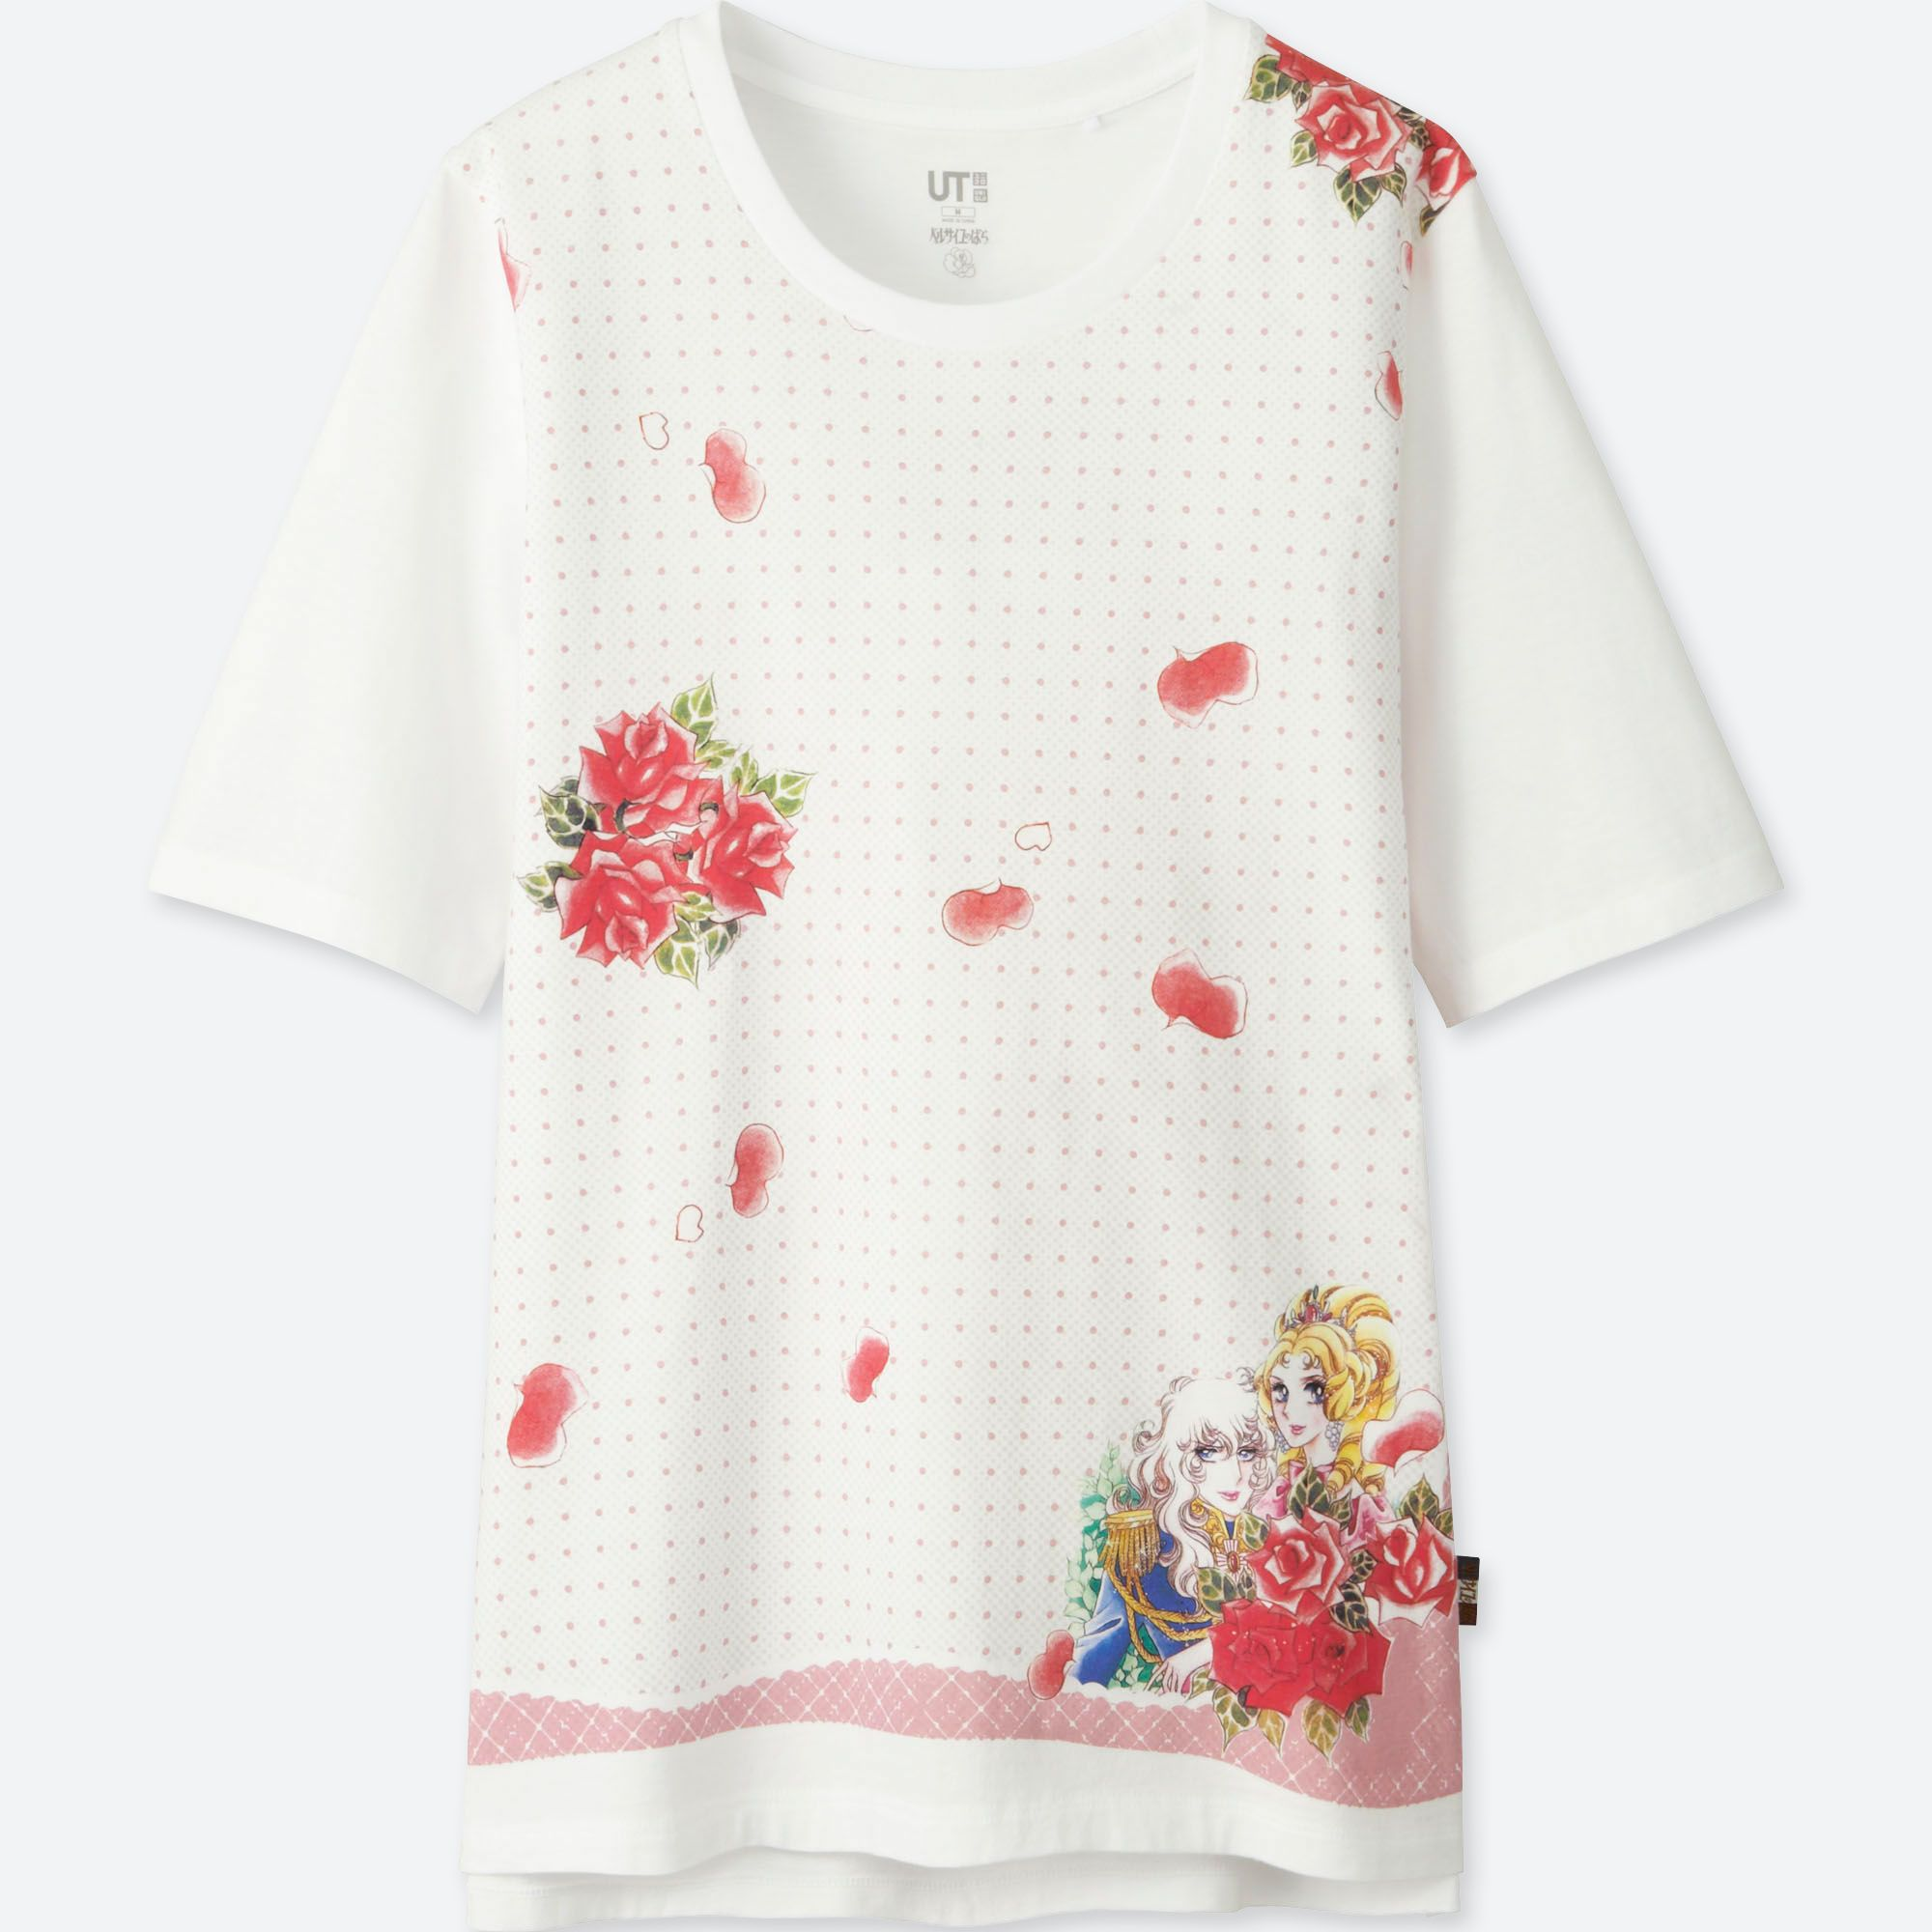 Uniqlo's New Rose of Versailles Line Will Make Any Manga Fan Swoon